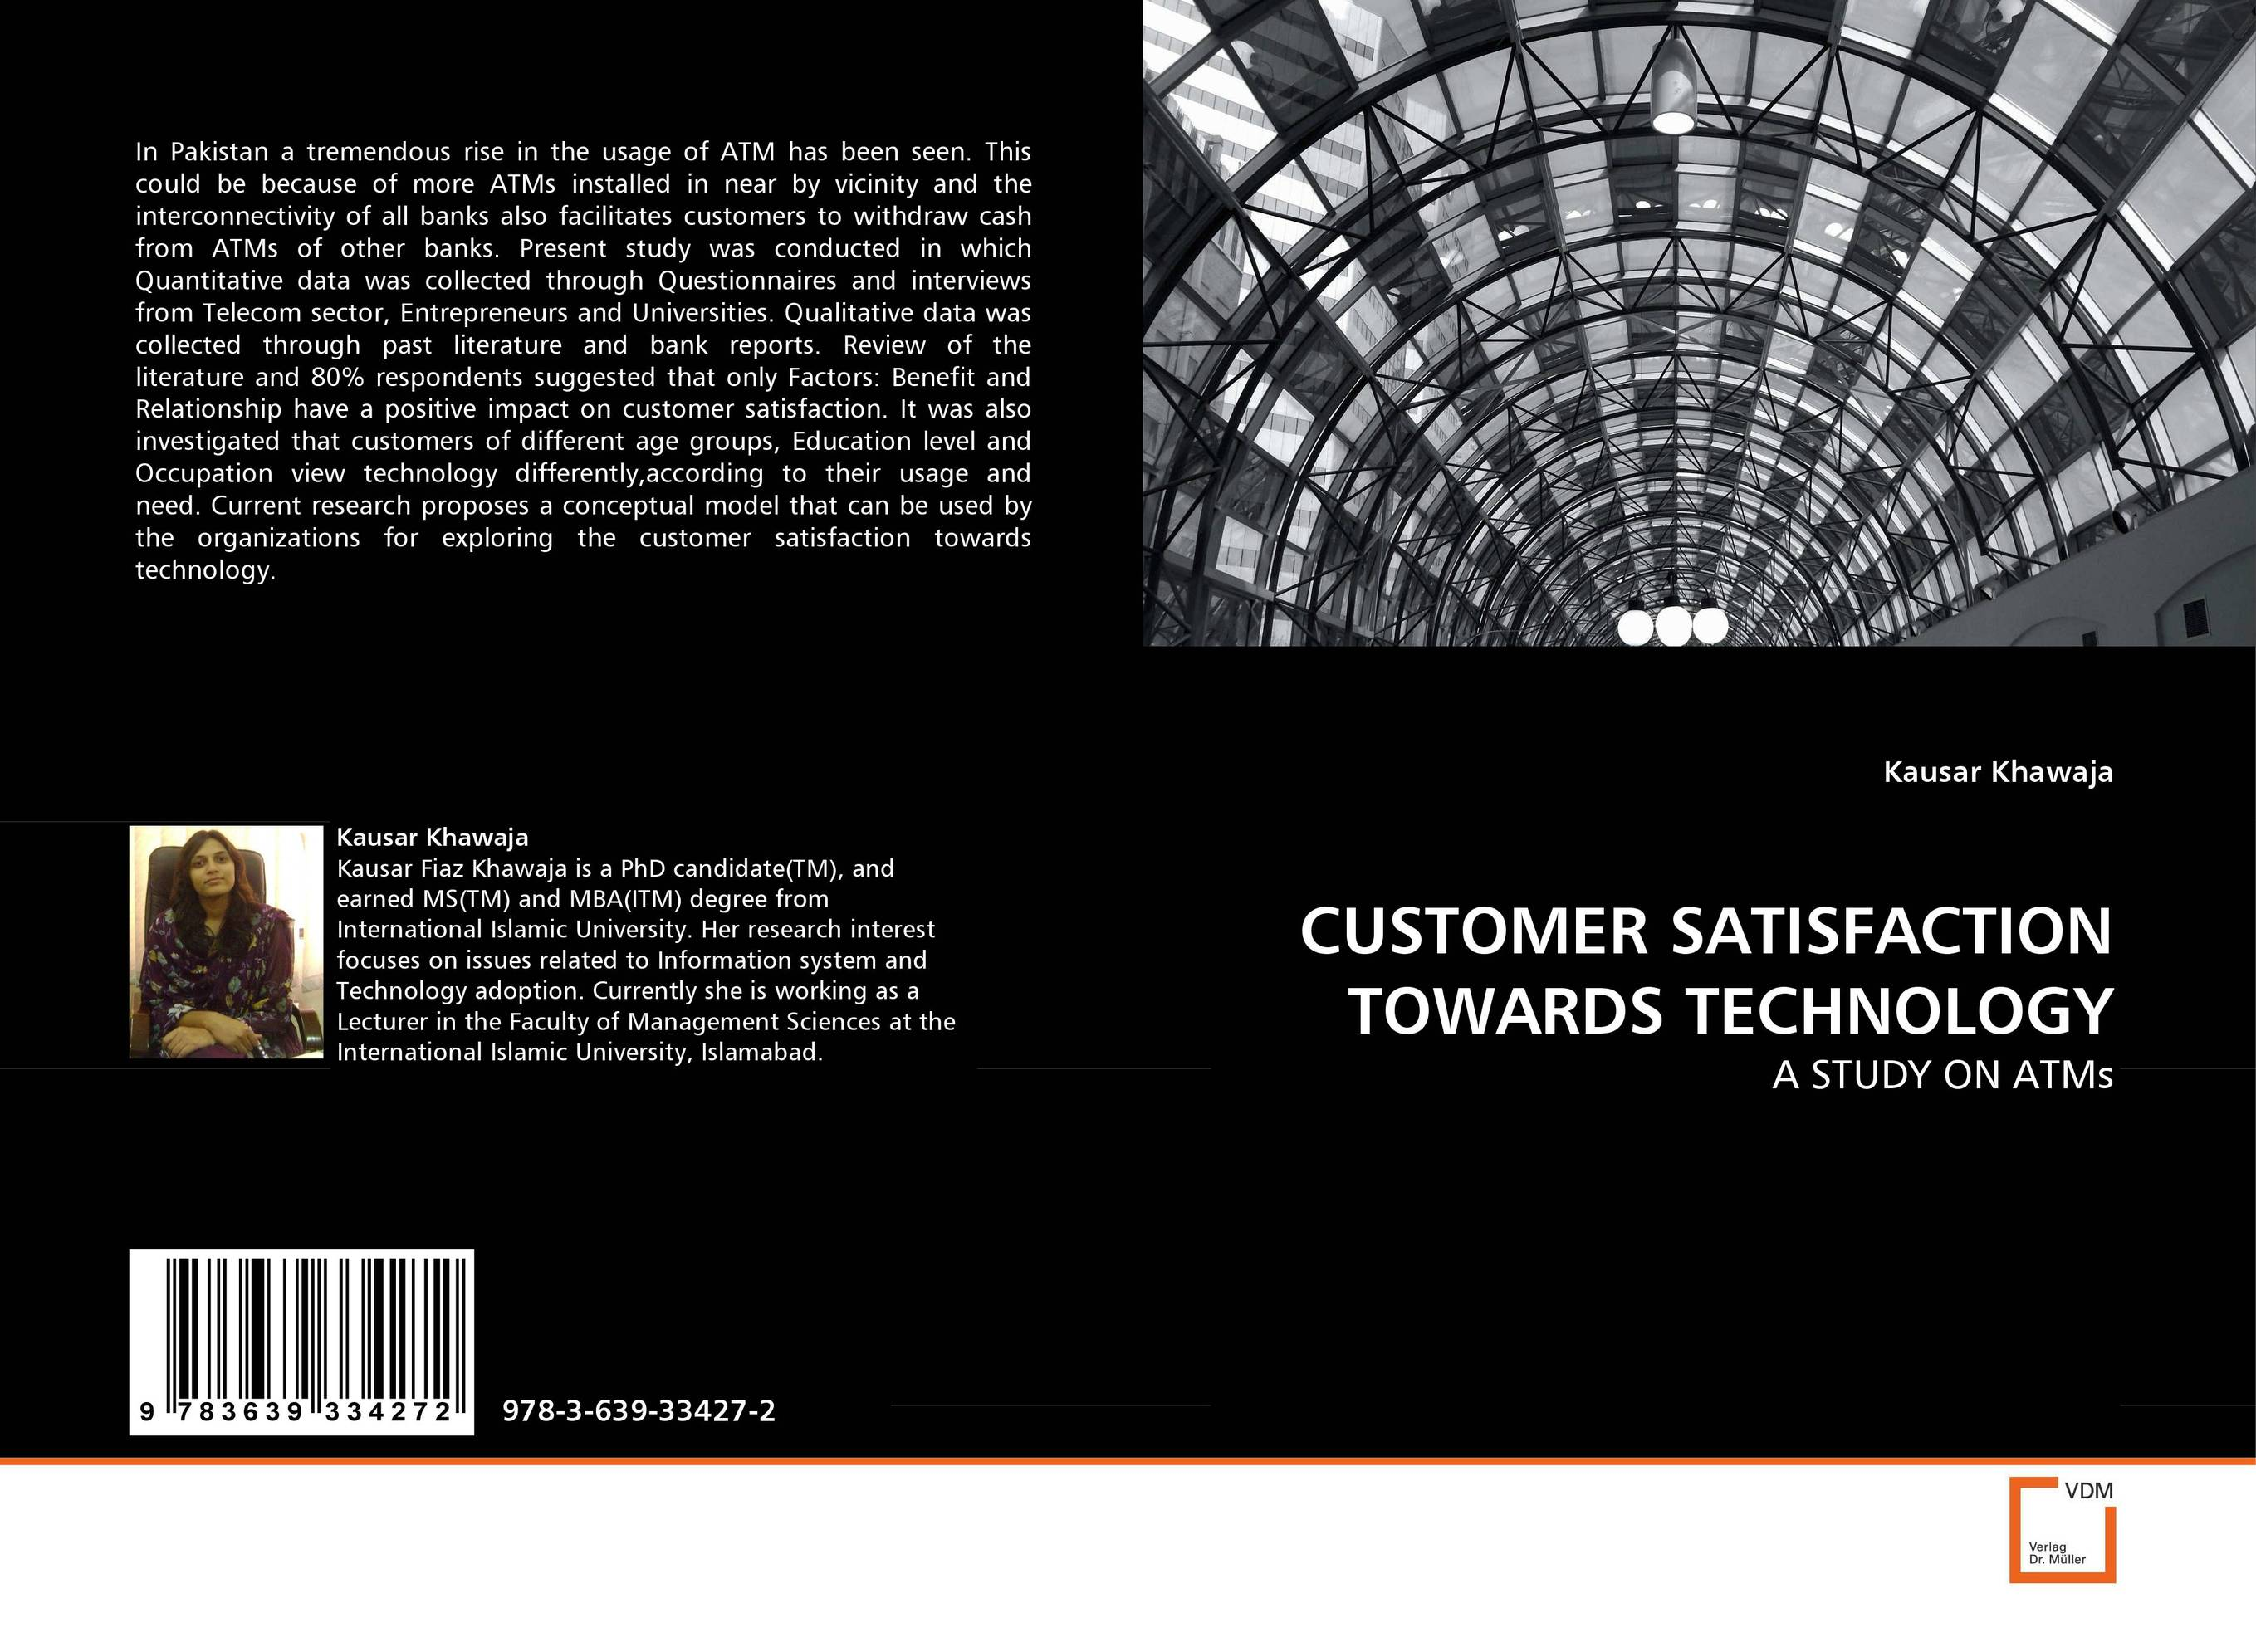 CUSTOMER SATISFACTION TOWARDS TECHNOLOGY